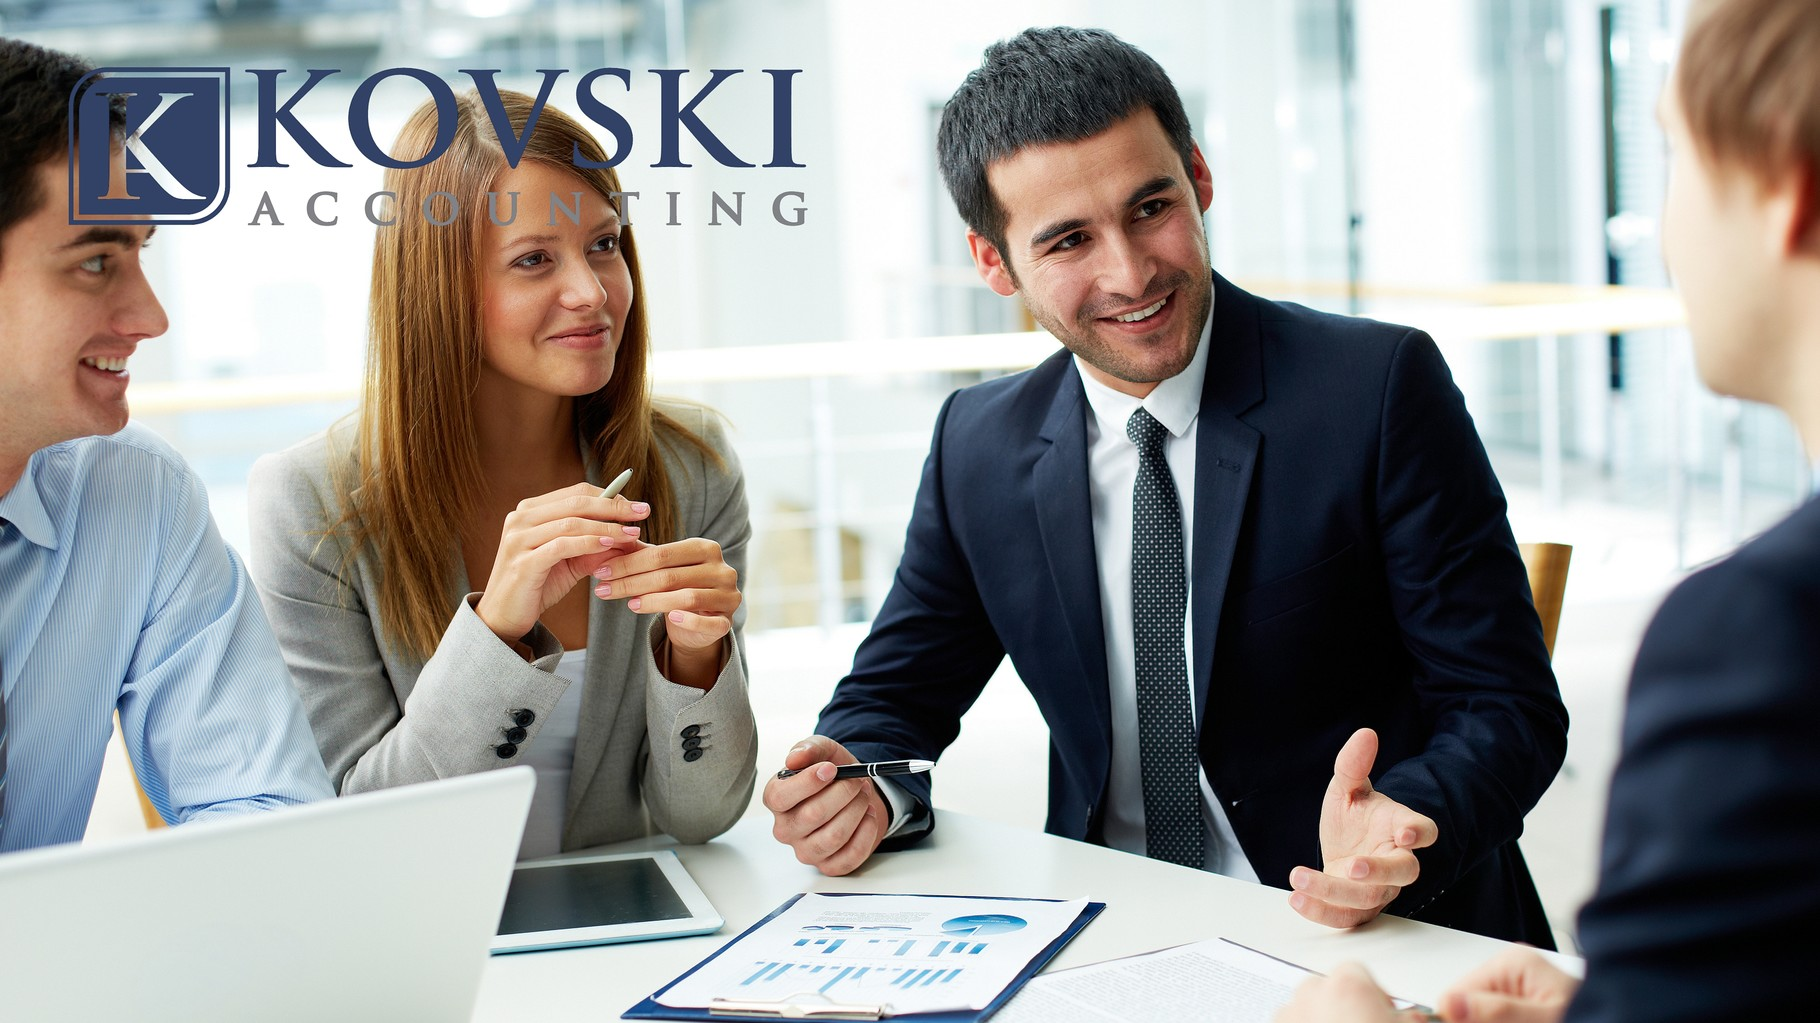 Kovski Accounting - Your Taxation Specialists